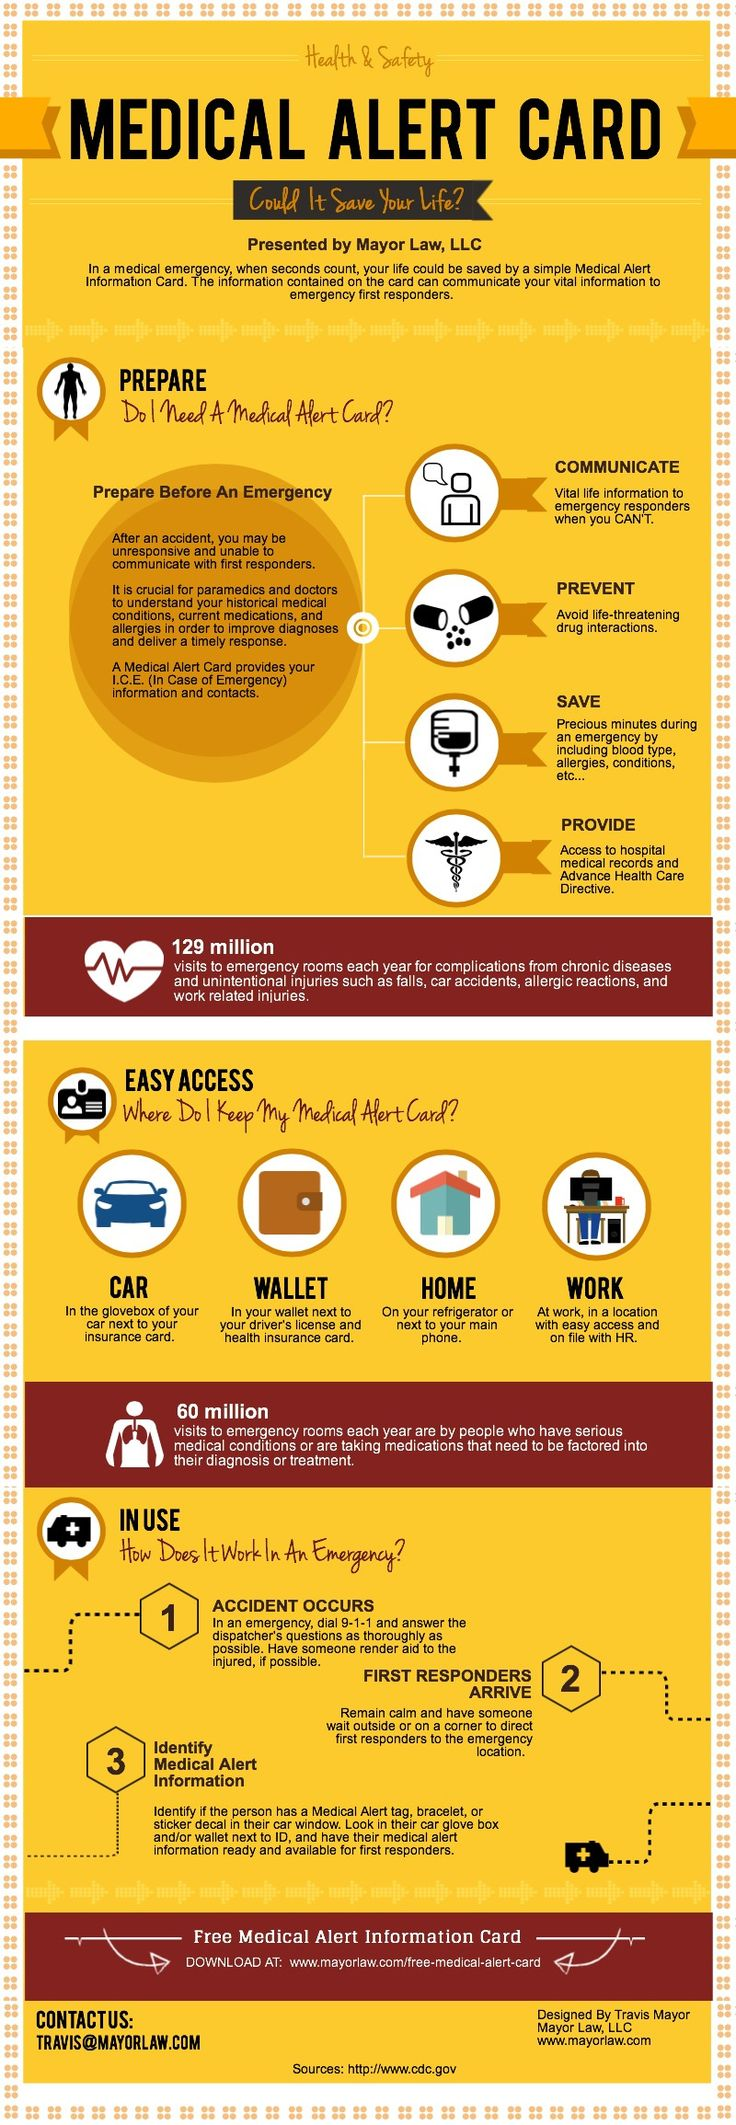 Free medical alert card download with infographic